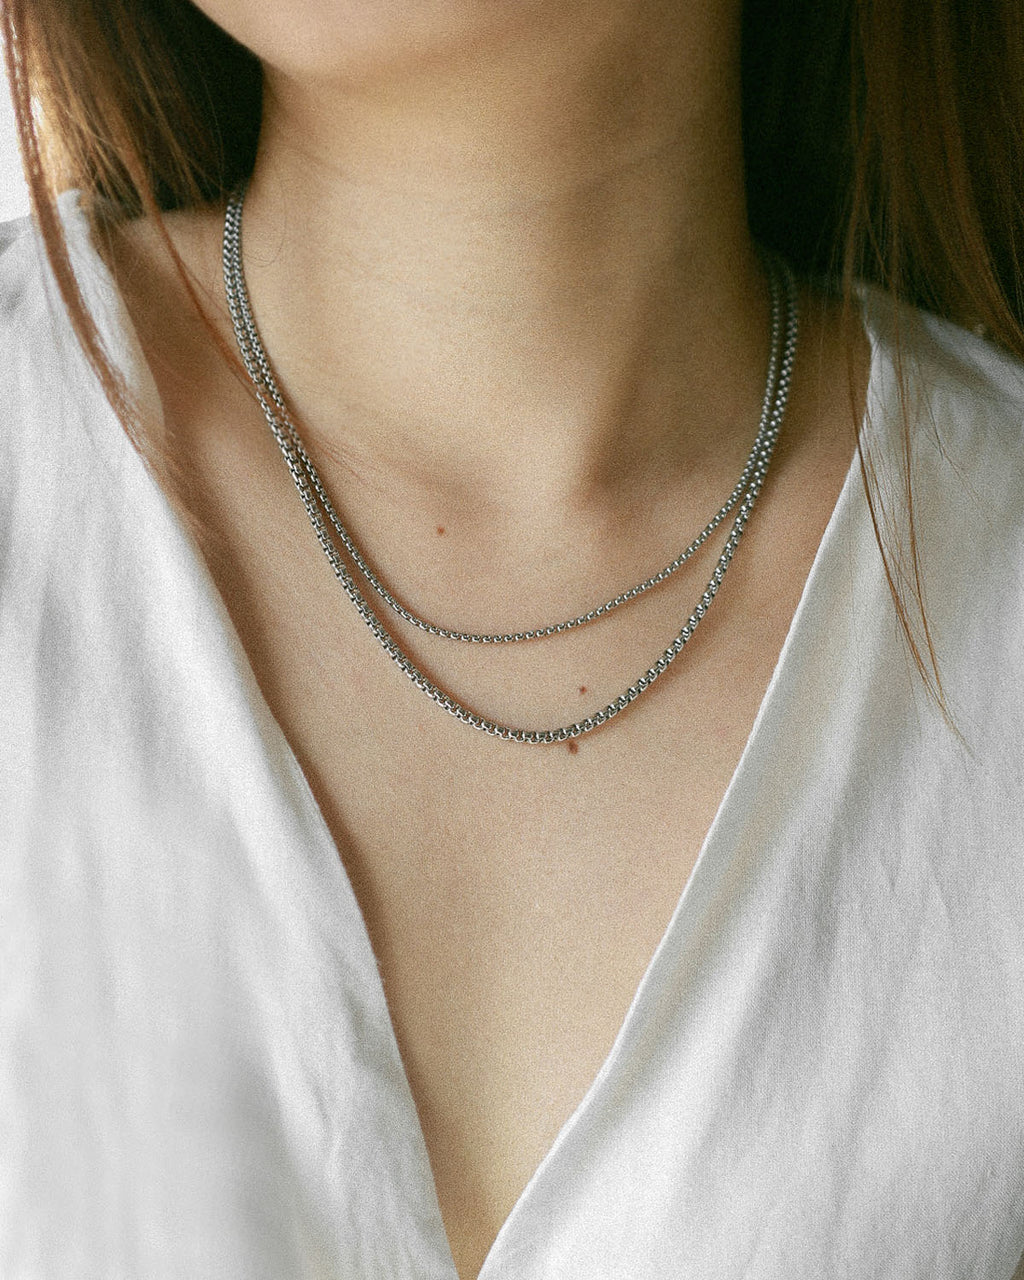 Box chain necklaces in silver by The Hexad